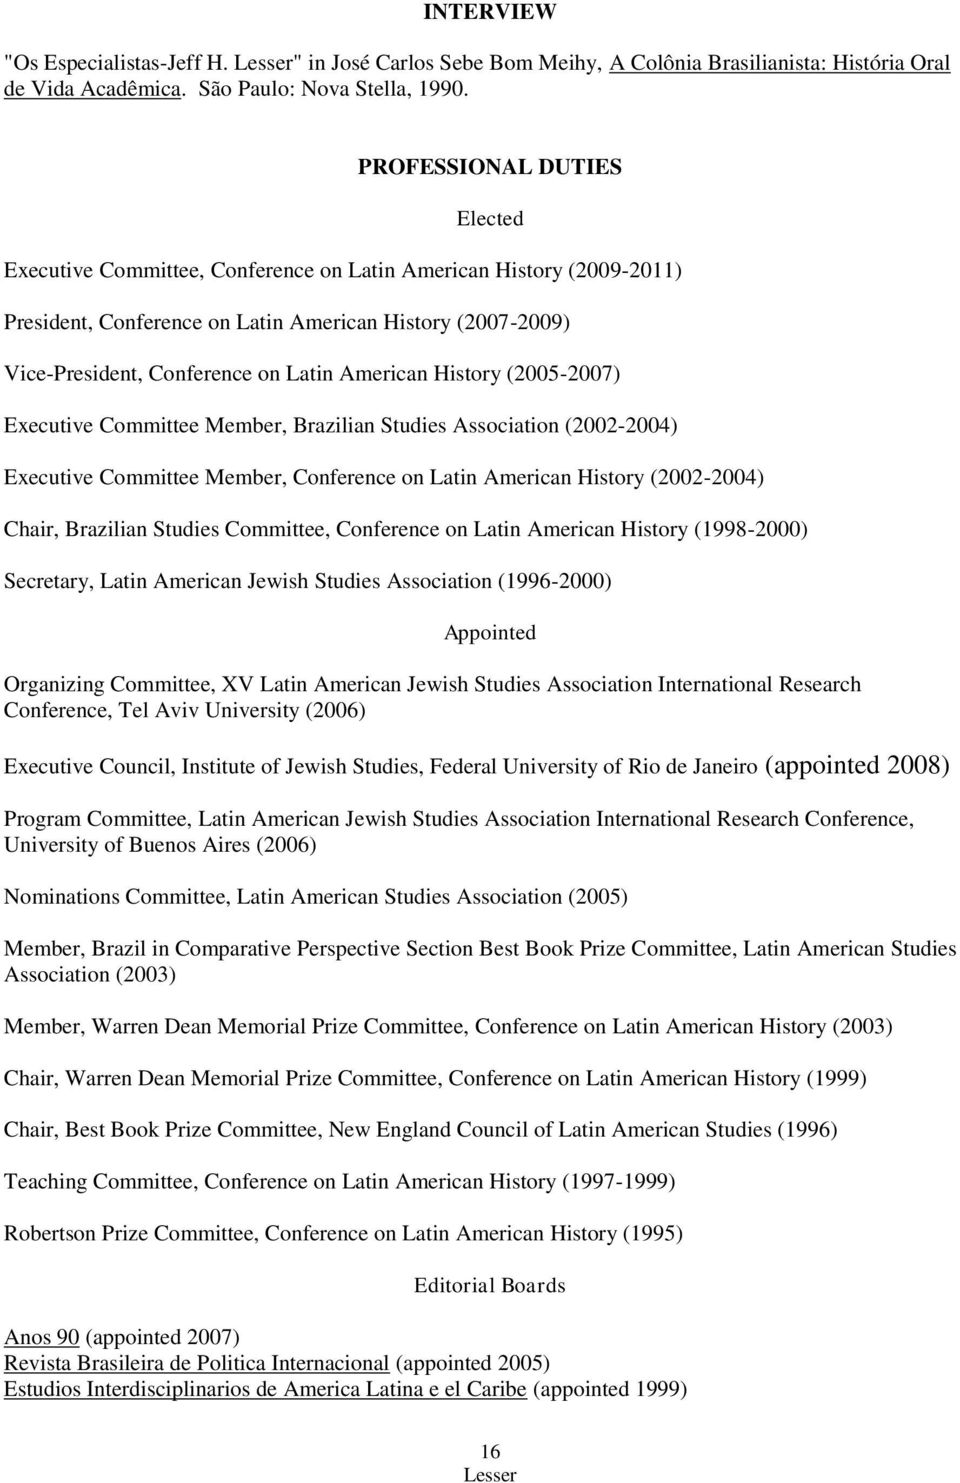 American History (2005-2007) Executive Committee Member, Brazilian Studies Association (2002-2004) Executive Committee Member, Conference on Latin American History (2002-2004) Chair, Brazilian